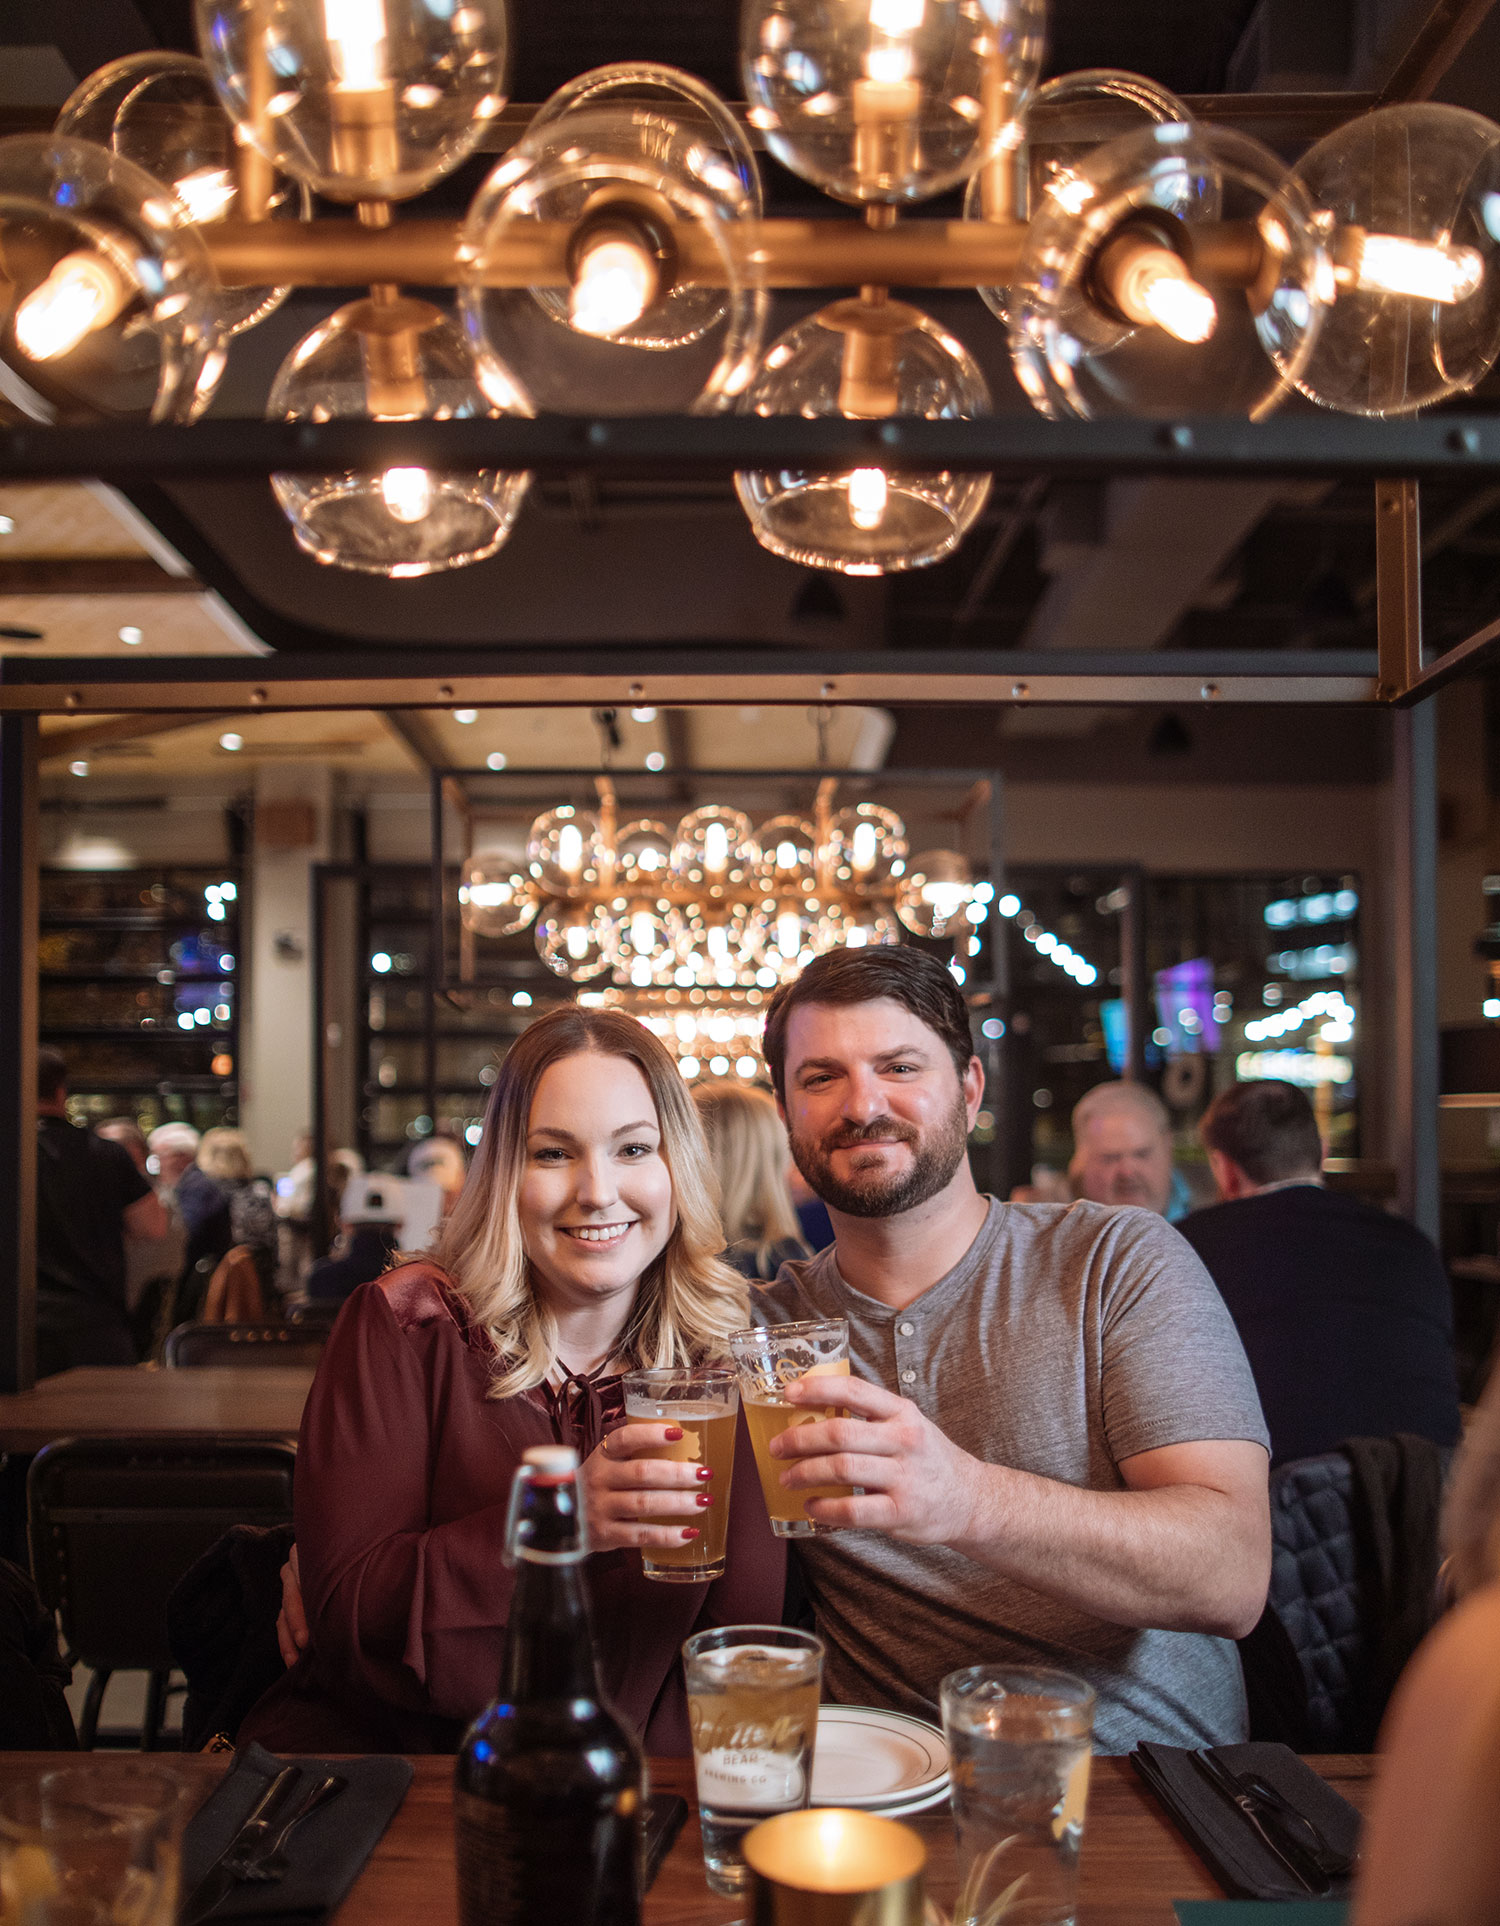 Union-Bear-Brewing-Restaurant-Pub-Plano-Magazine-13-Kathy-Tran.jpg